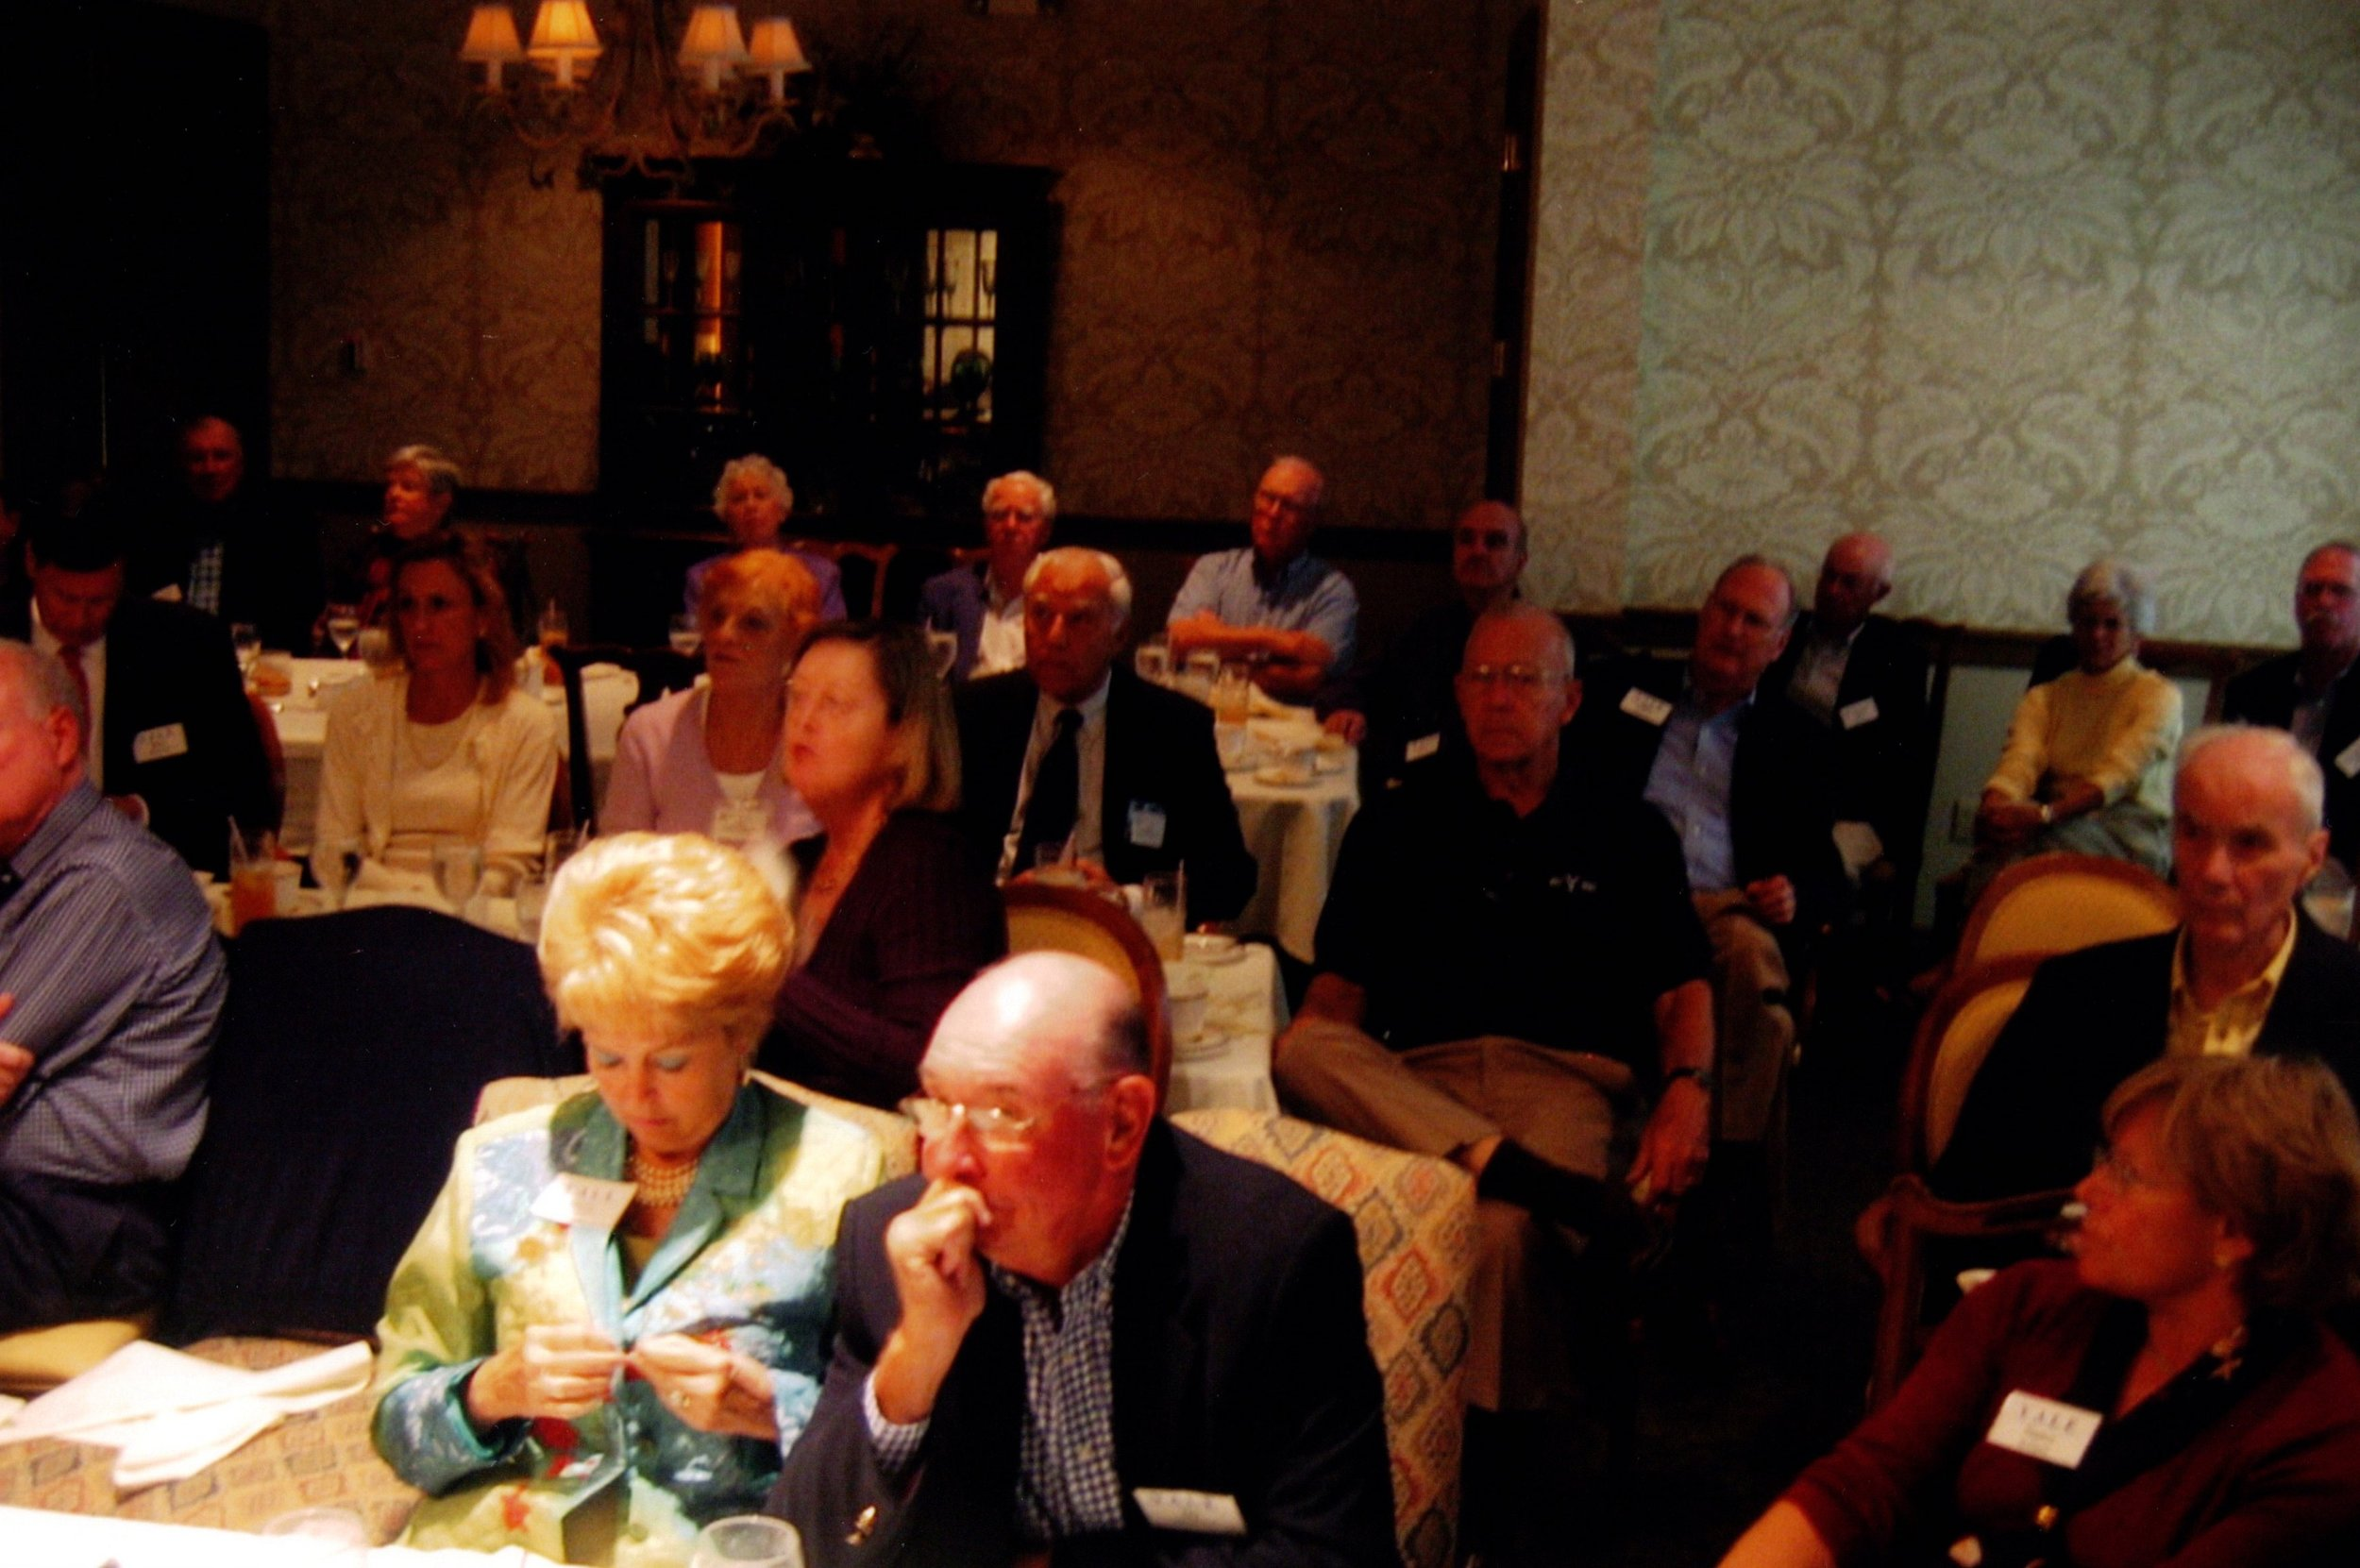 3_29_2007 - YALE CLUB LECTURE - PROF. MINH LUONG 6.jpg